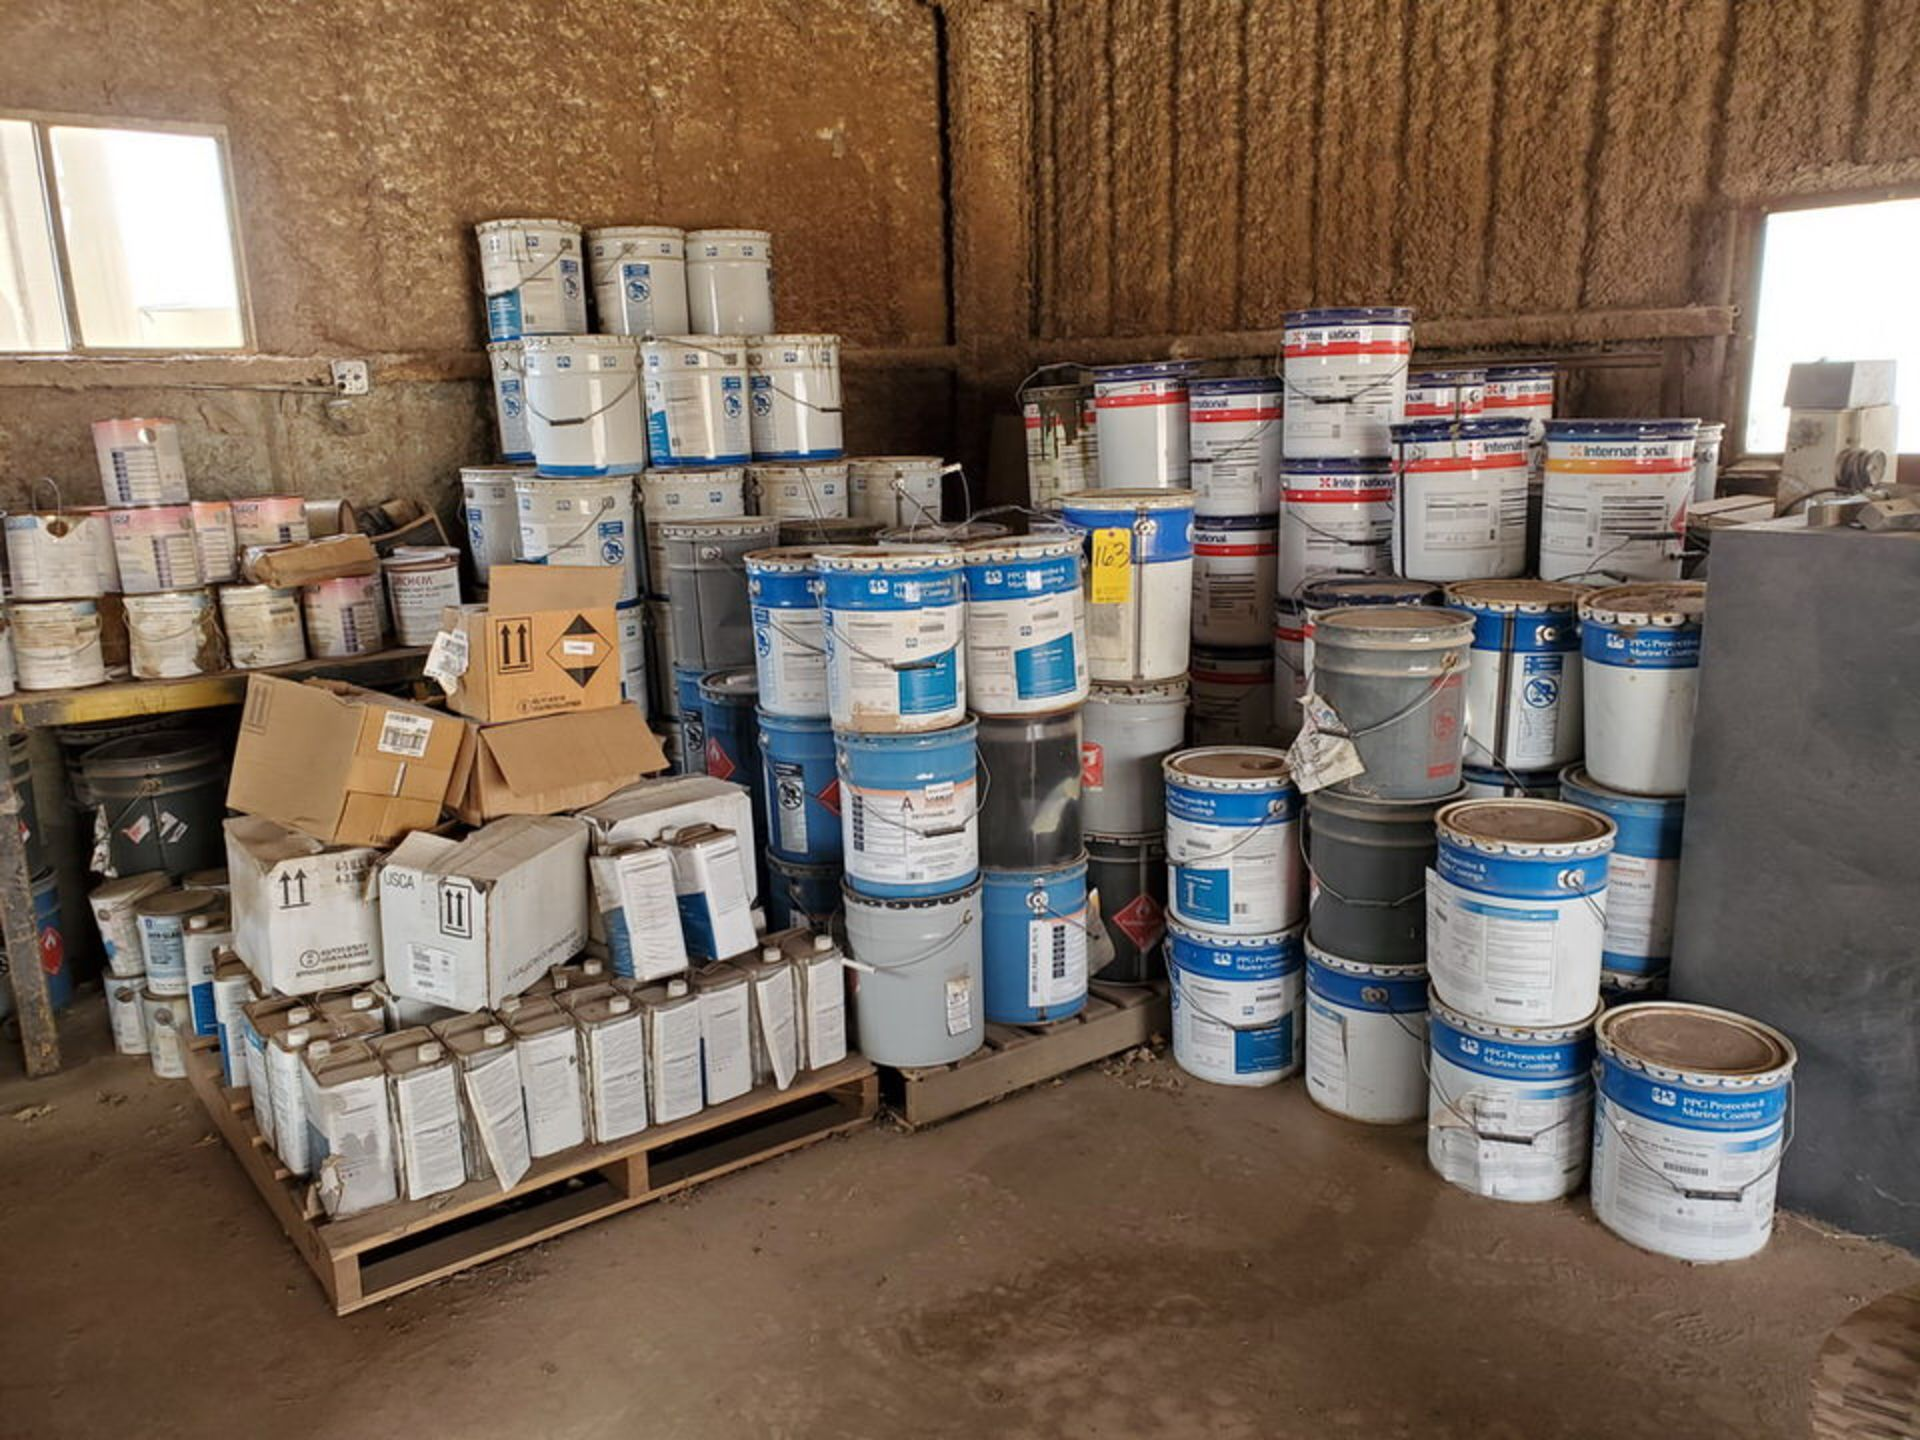 Assorted Paints & Marine Coatings Mfg's: PPG, Intl. & Other